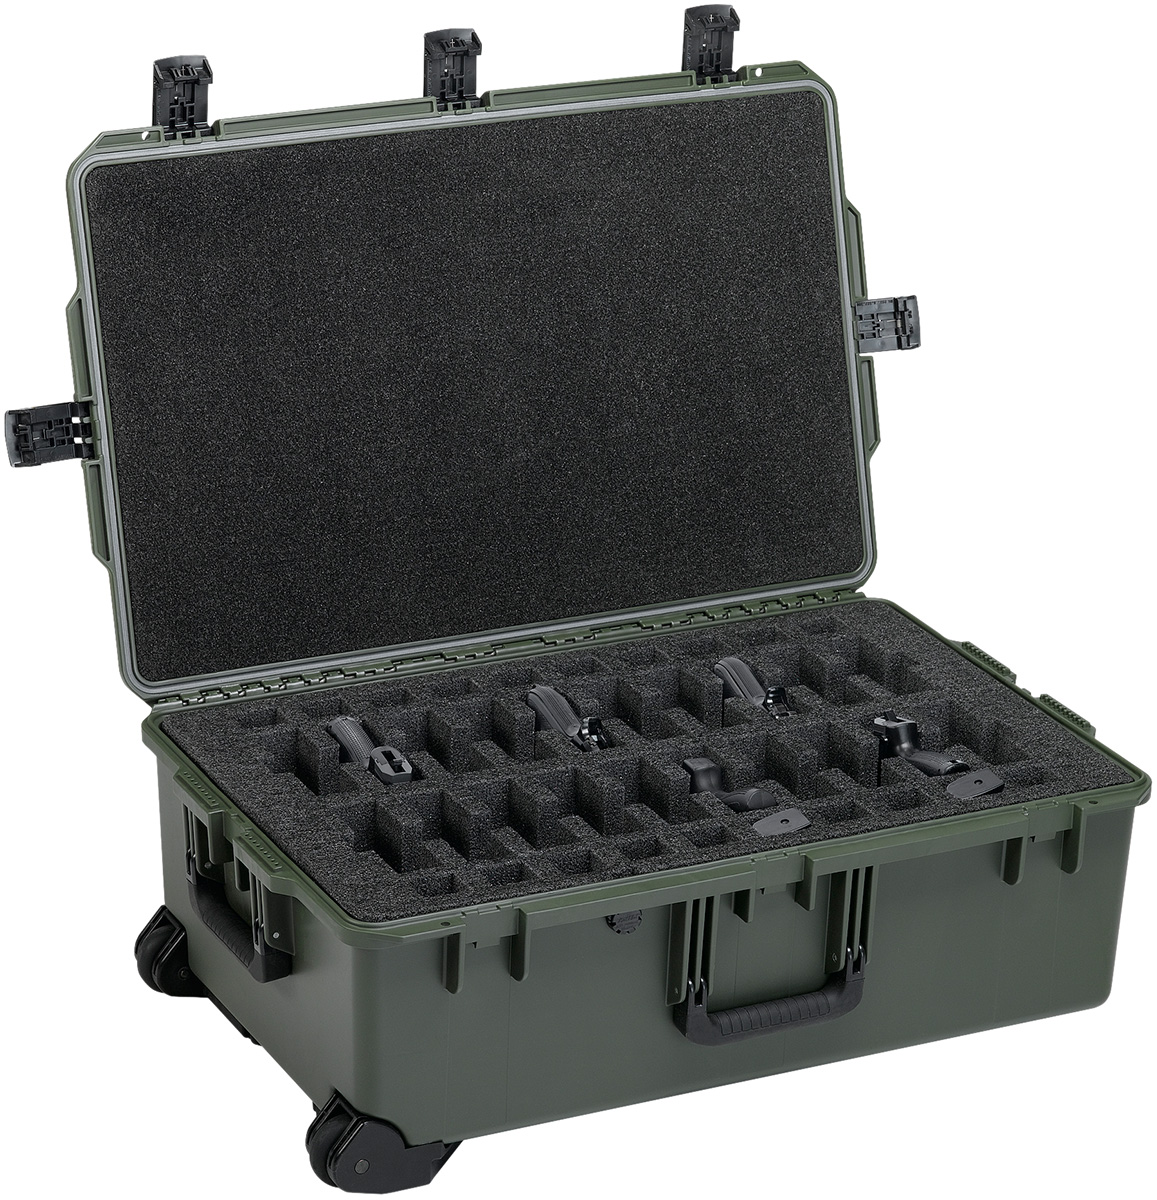 pelican peli products 472 PWC M9 20 military beretta m9 transport case